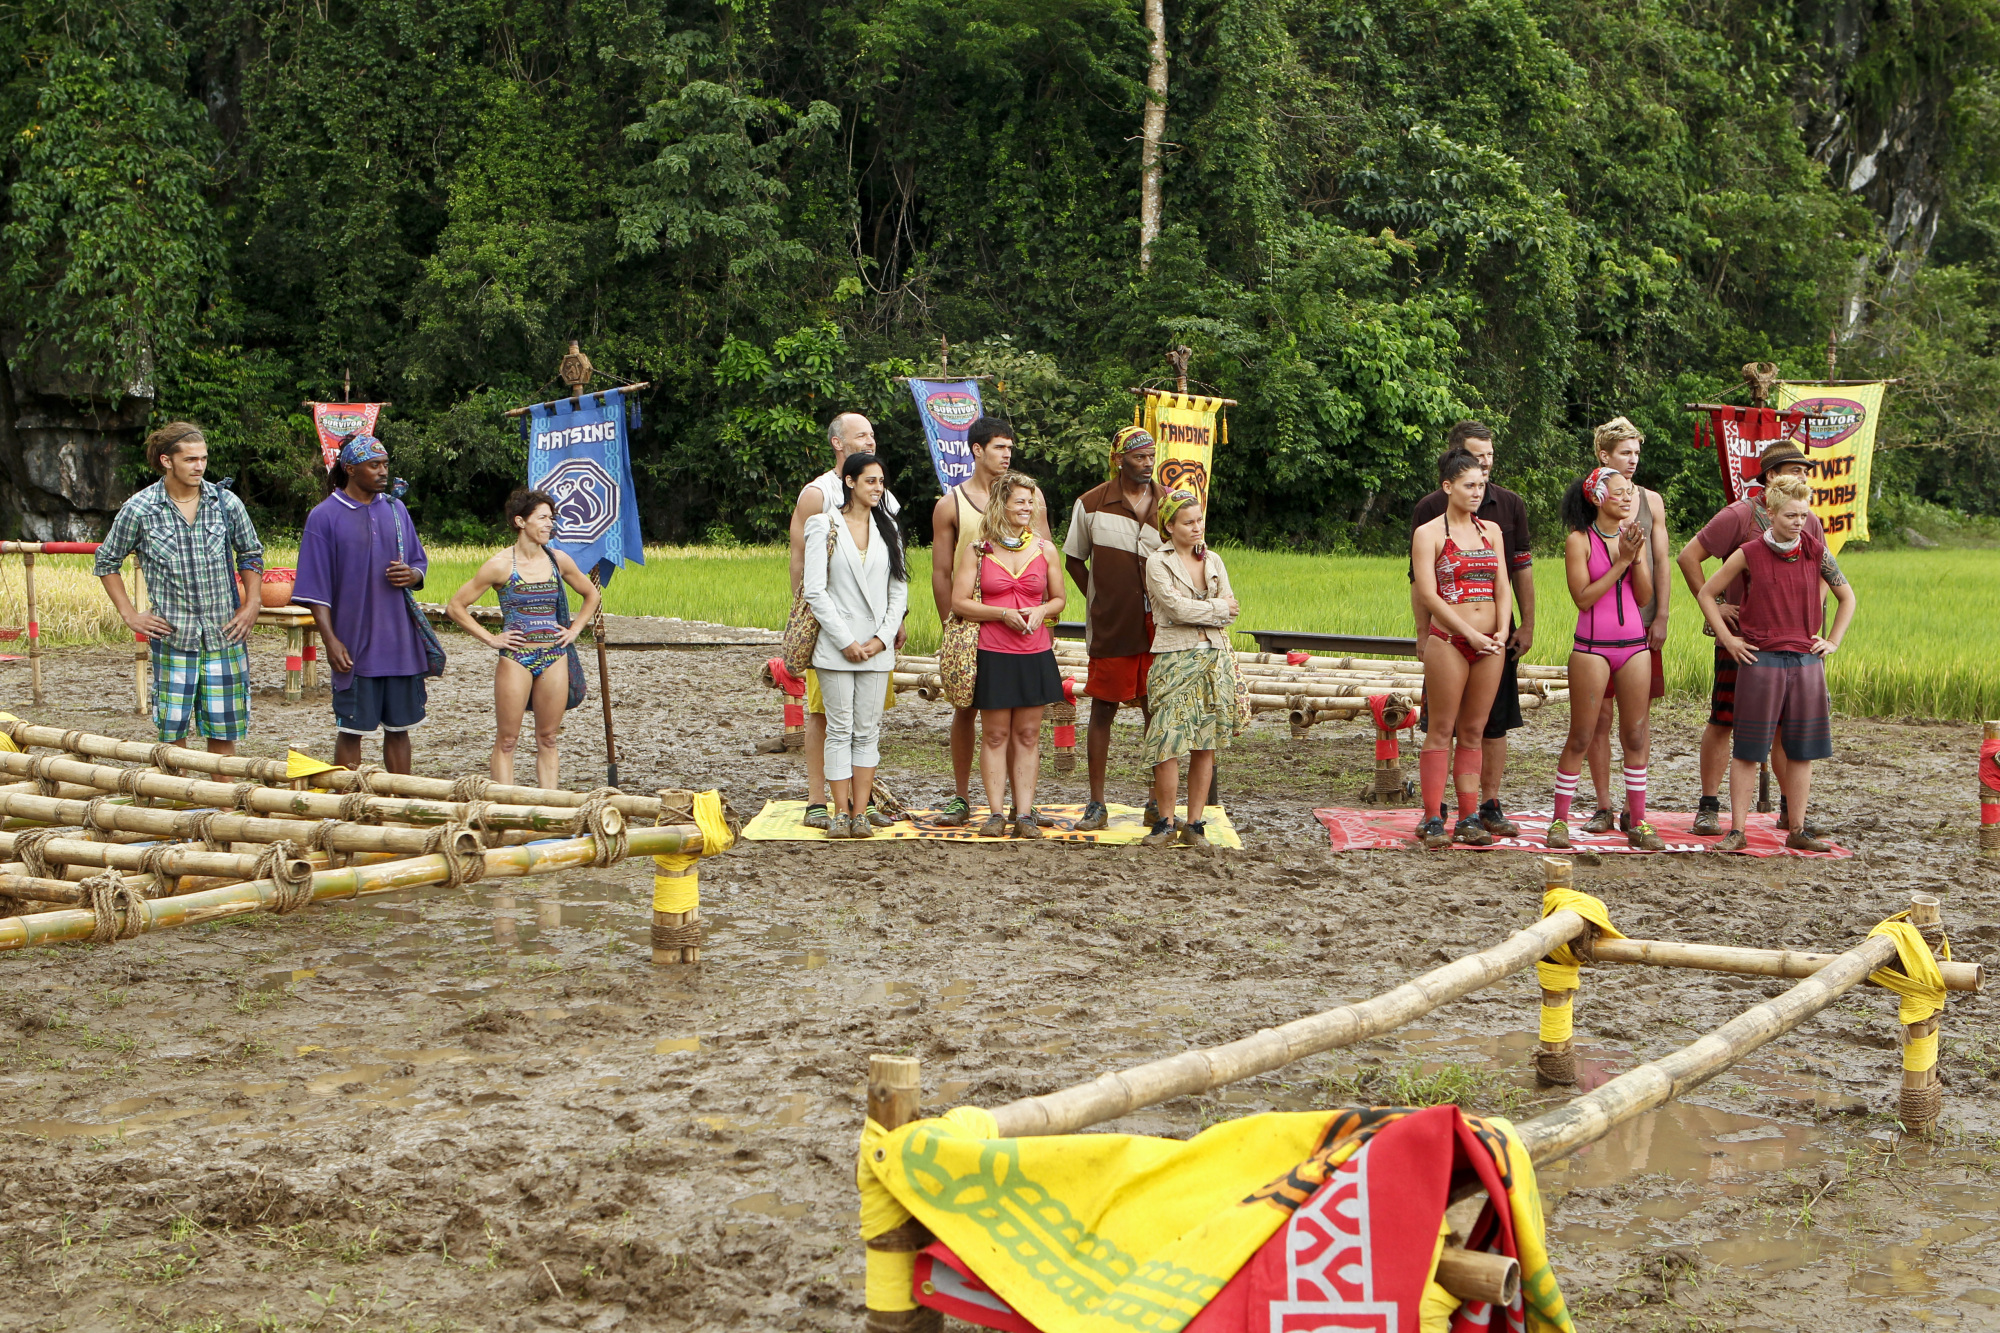 Getting Ready for the Immunity Challenge